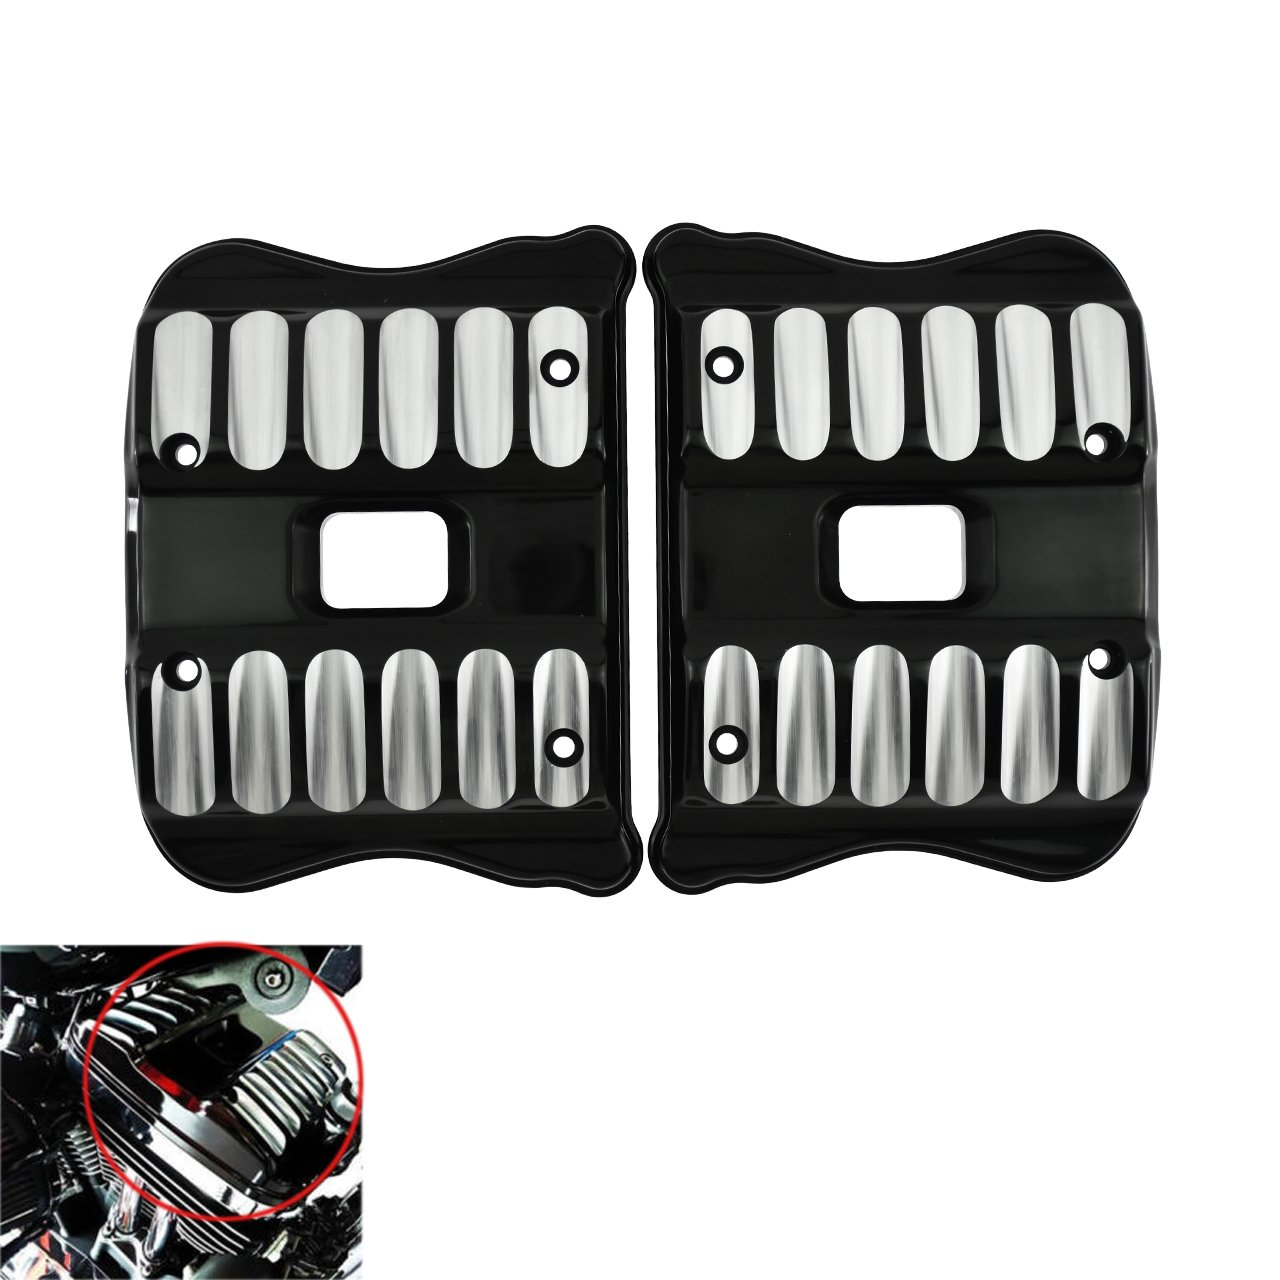 Rocker Box Covers CNC For Harley 04-17 Sportster Custom XL 1200 Iron 883 Seventy Two Forty Eight Roadster Low Customs Sports